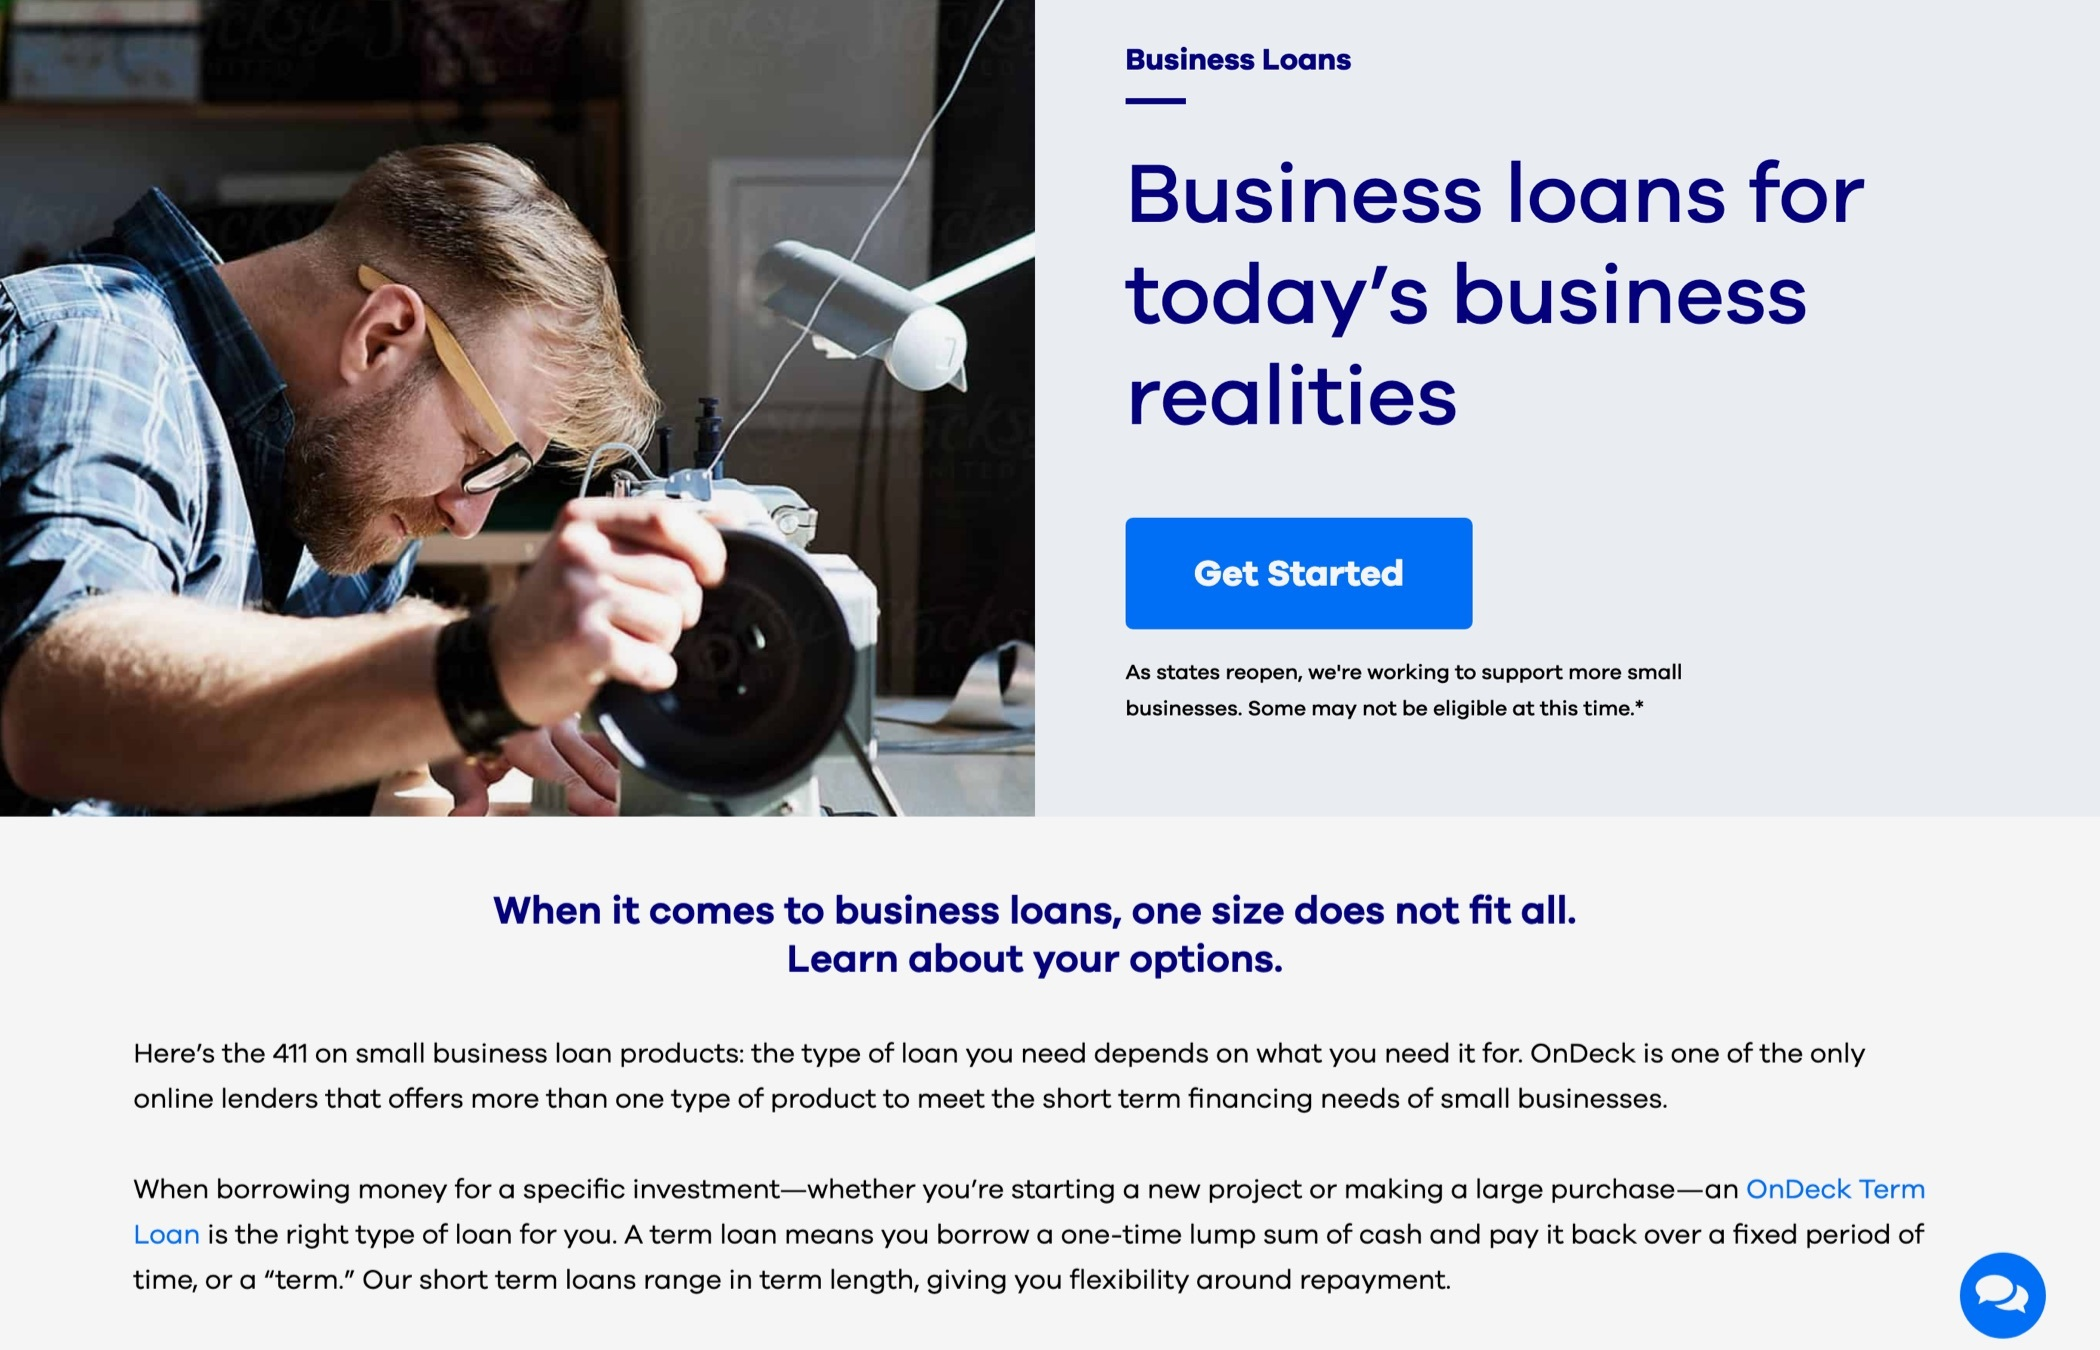 A photo of a small business person at a workbench, with the headline text: Business loans for today's business realities.